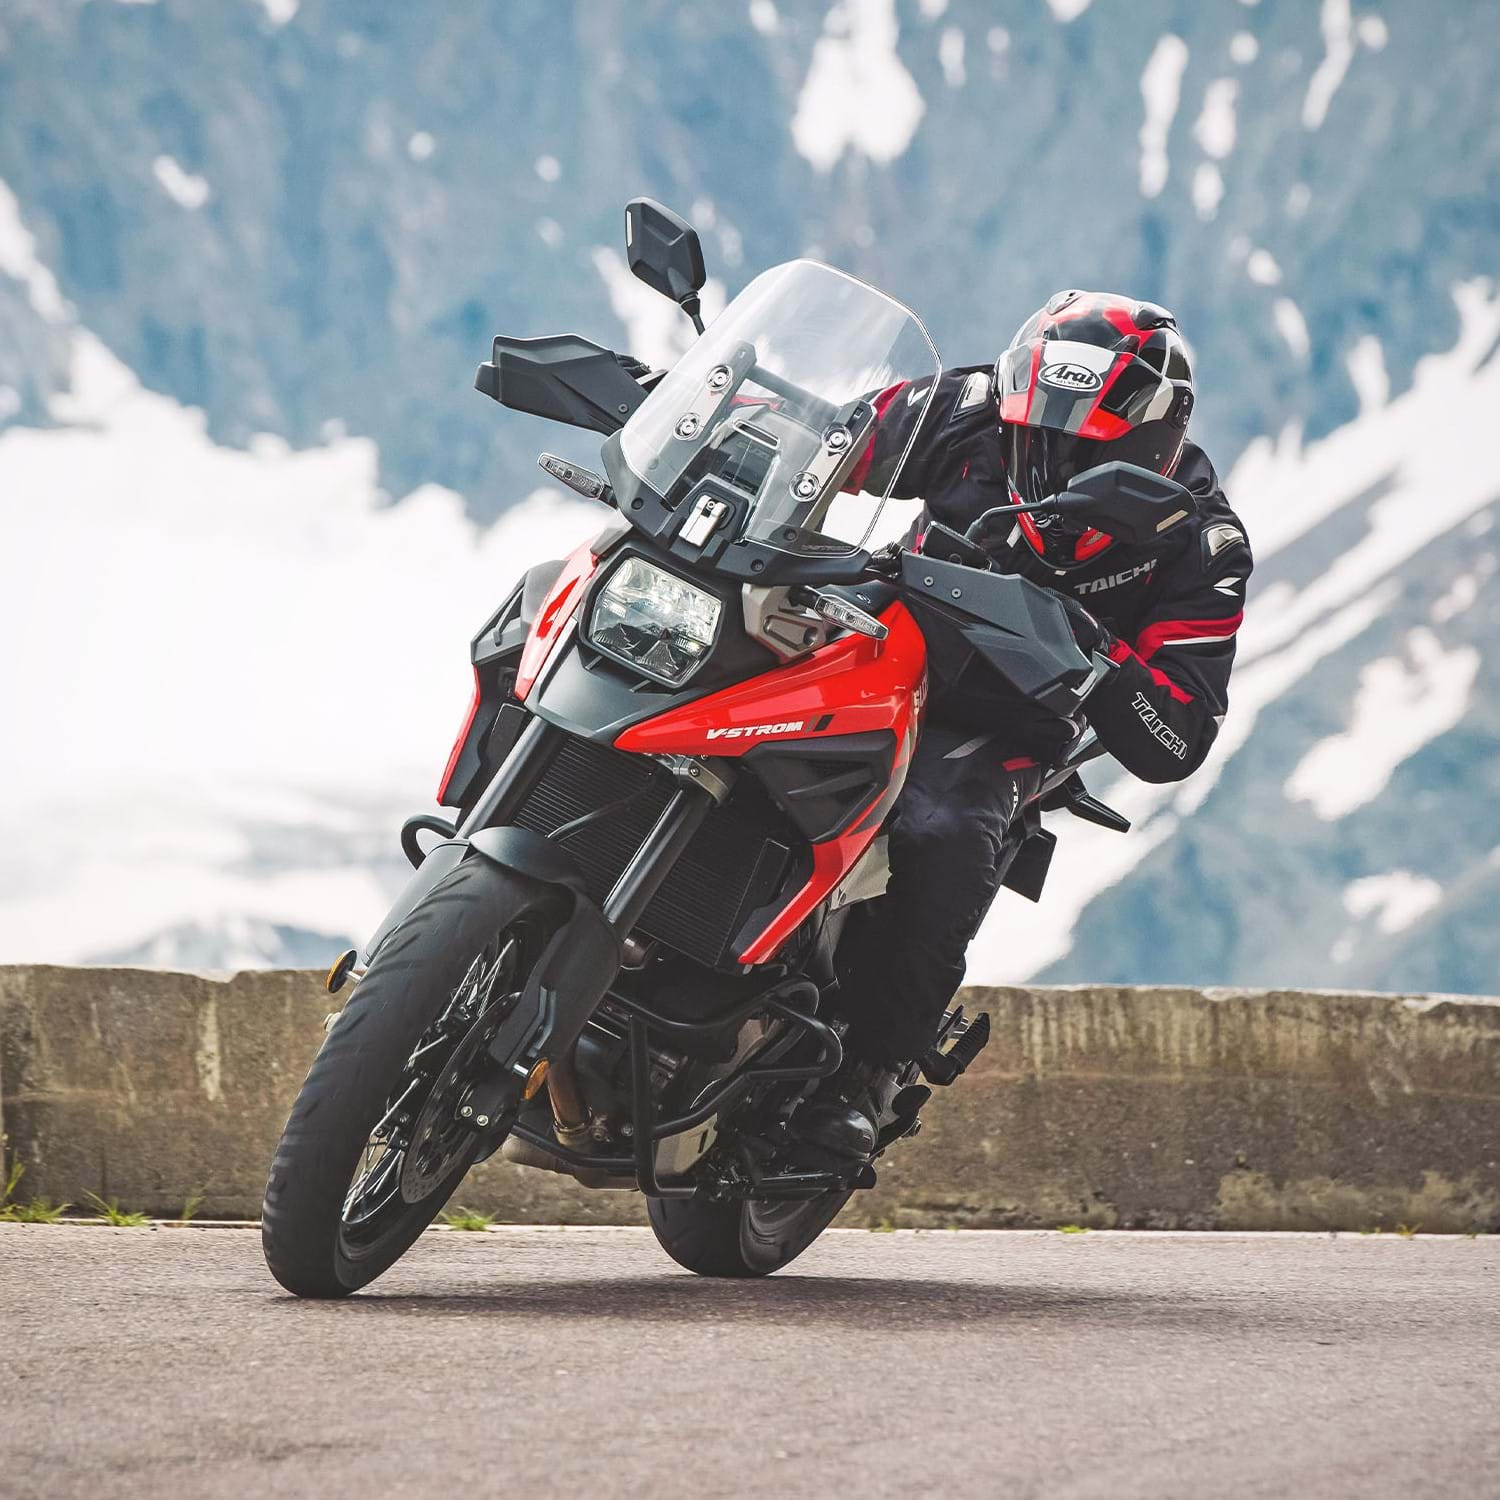 V-Strom 1050XT bike with a mountain range. The Master of Adventure, the best all round adventure bike